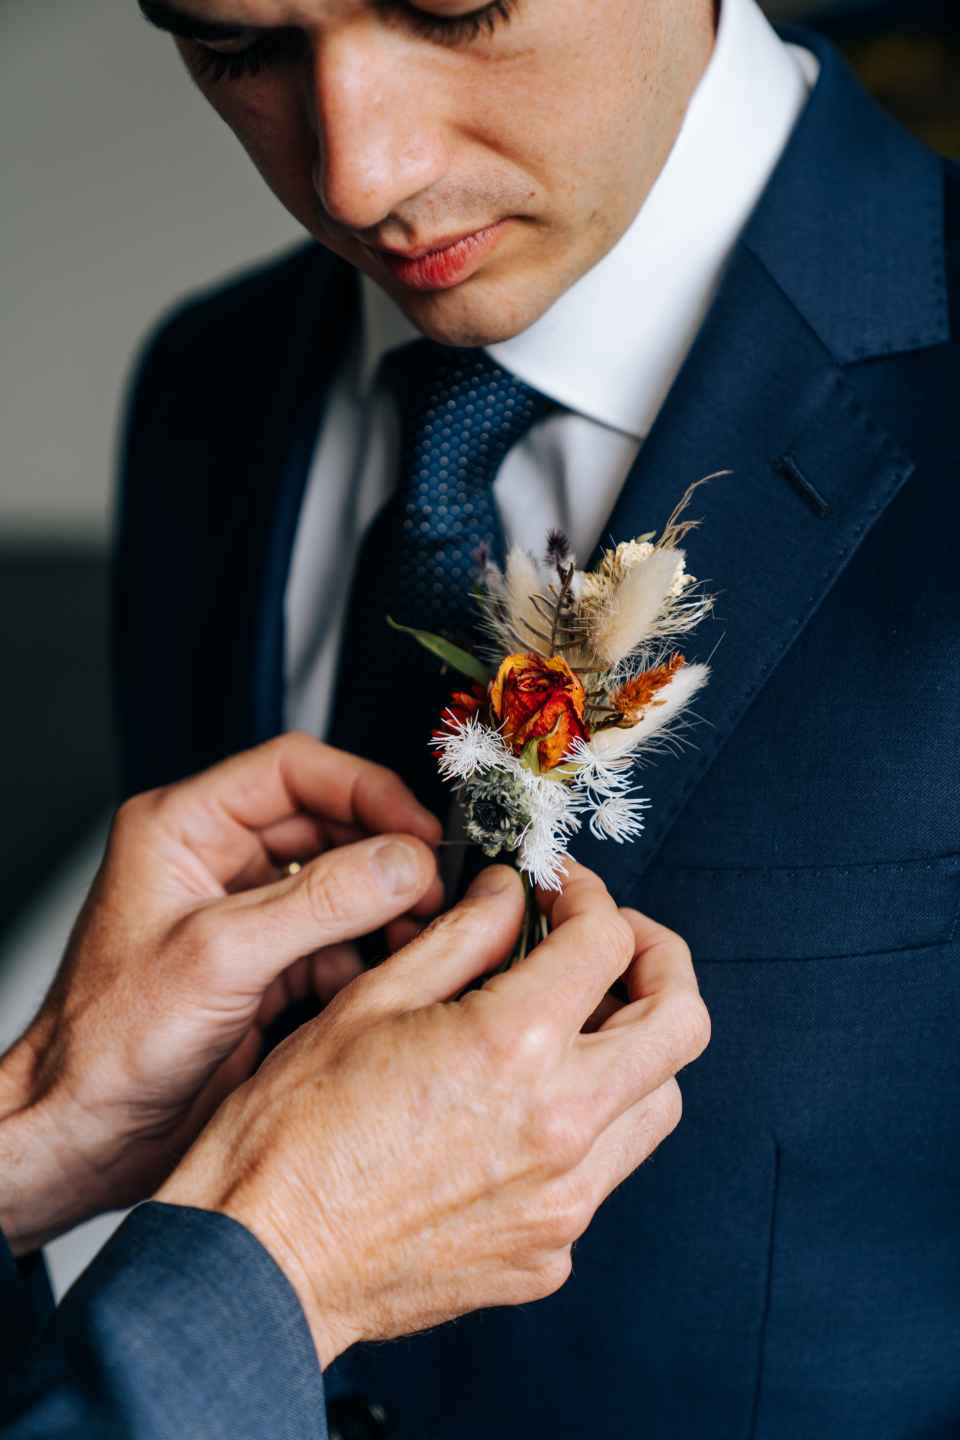 The groom's family pays for flowers that are used in the bridal bouquet, the groom's mother's and grandmother's mini bouquets or corsages